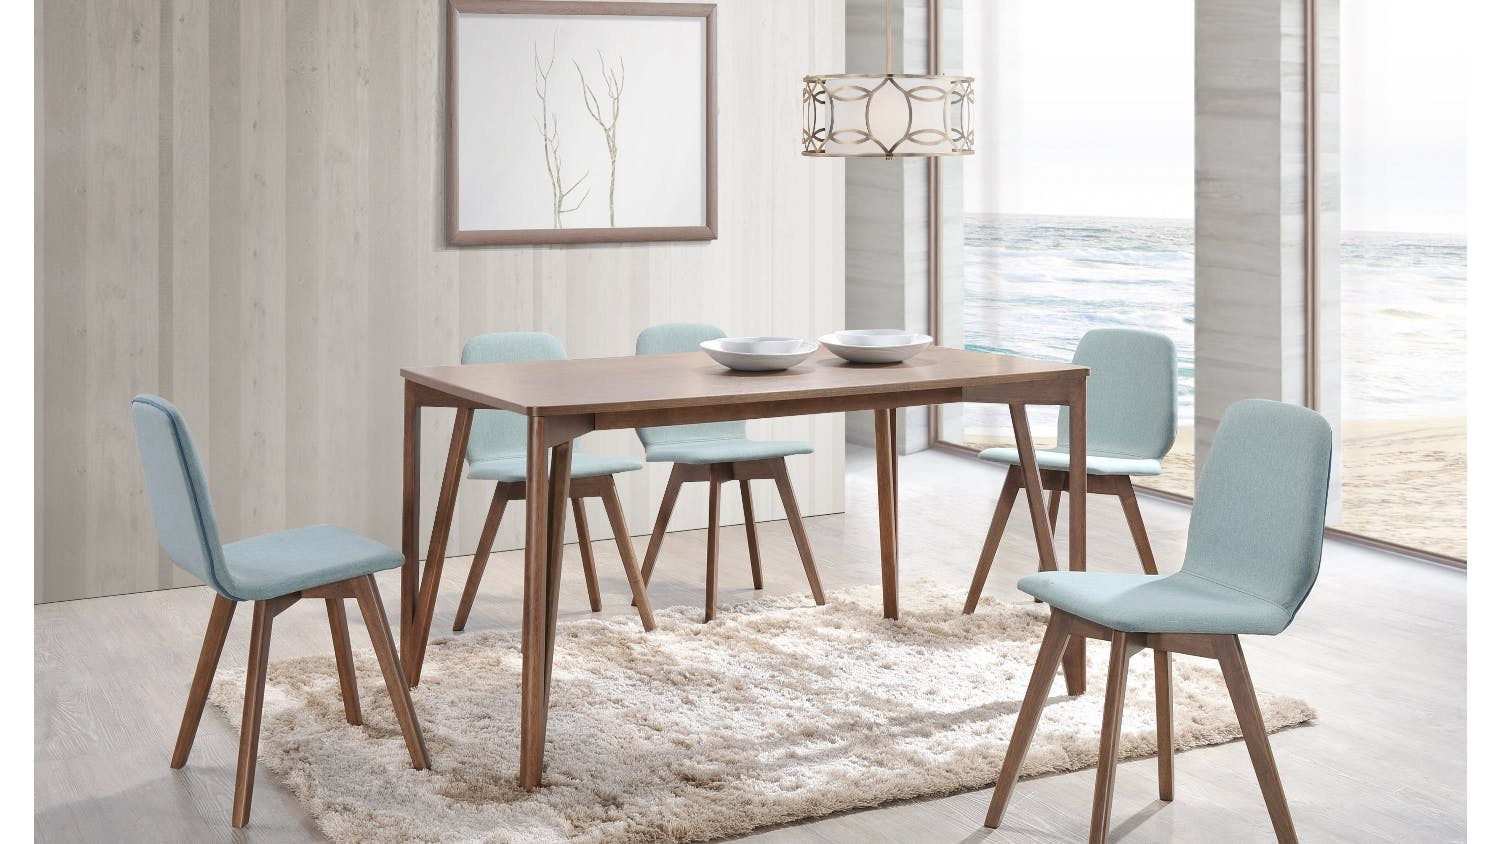 Diva Dining Table. Diva Dining Table   Harvey Norman Singapore